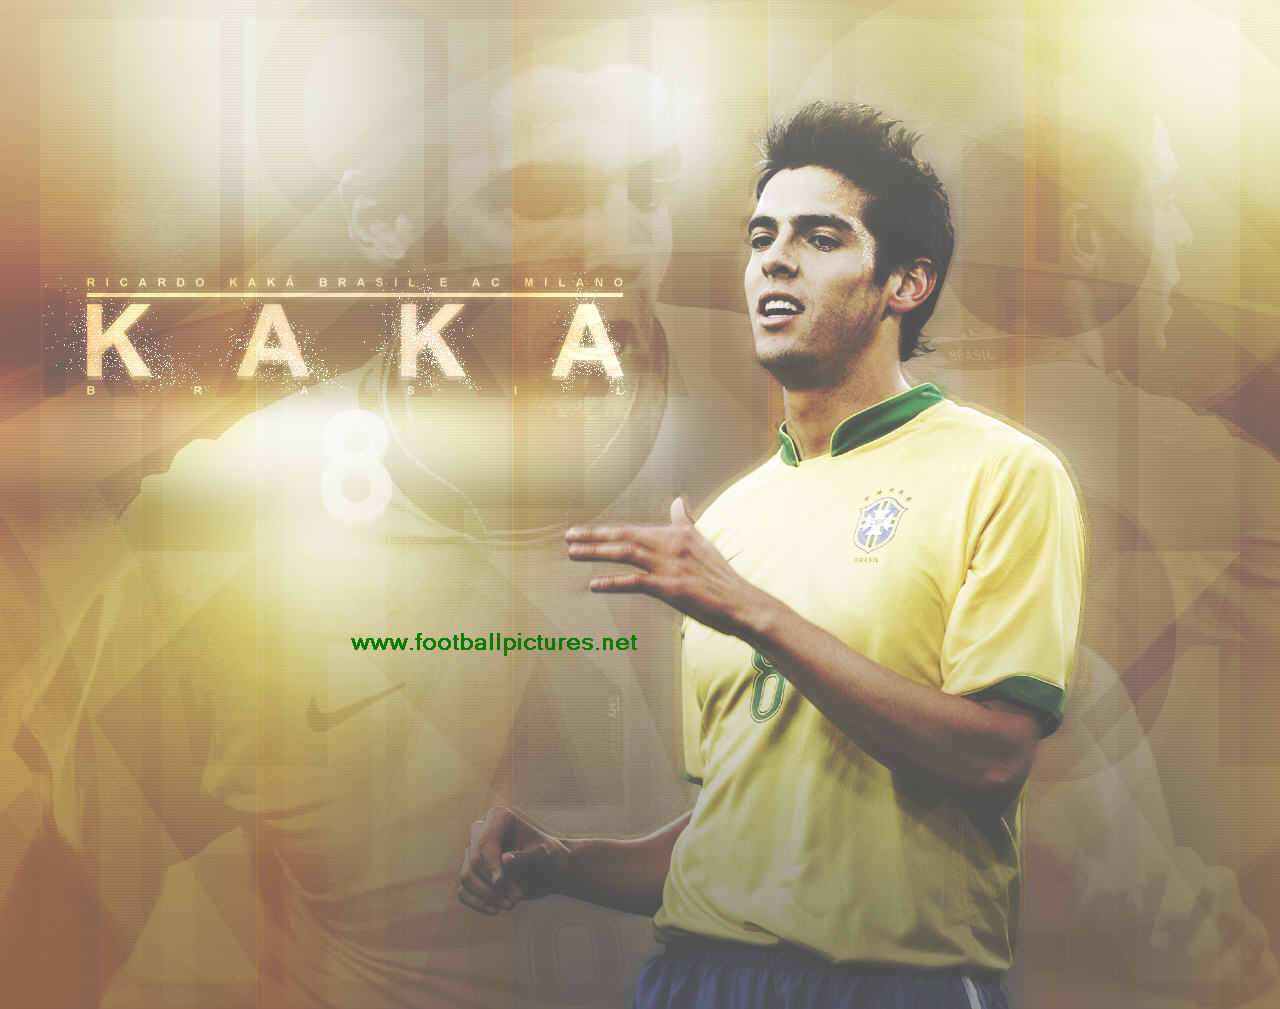 ricardo_kaka_brazil_wallpaper-other